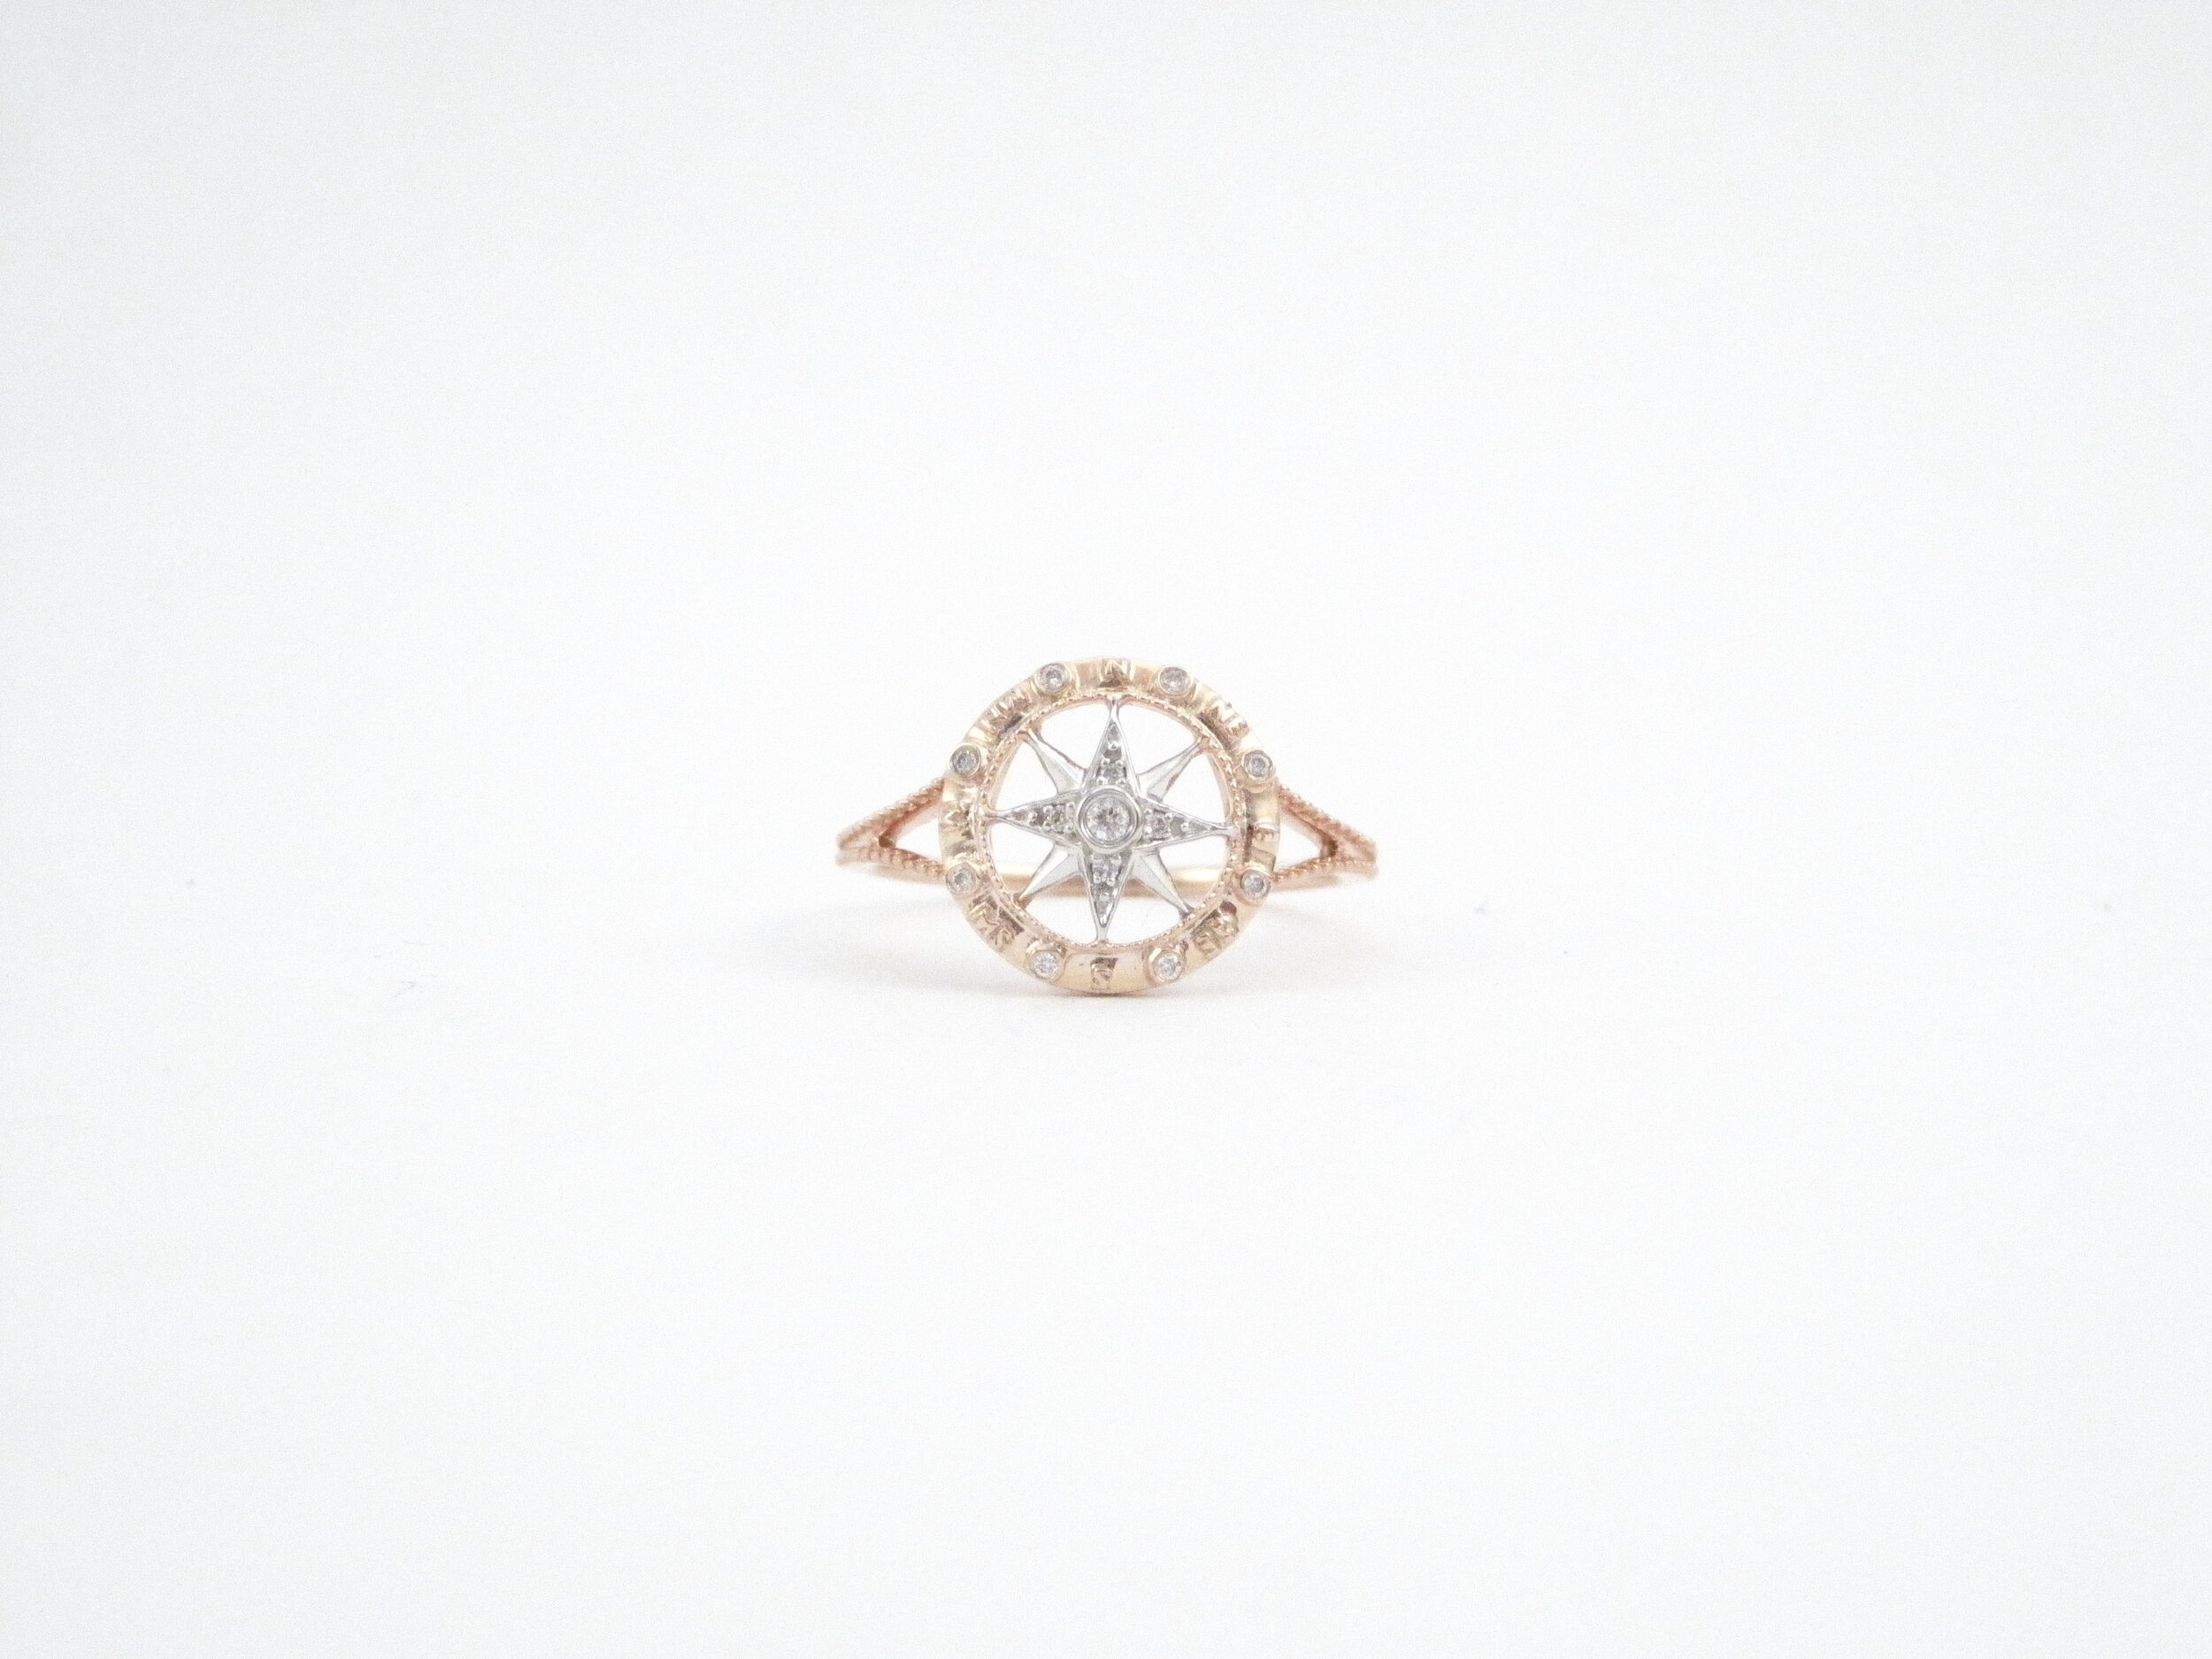 14kt Rose and White Gold Compass Ring with Diamonds